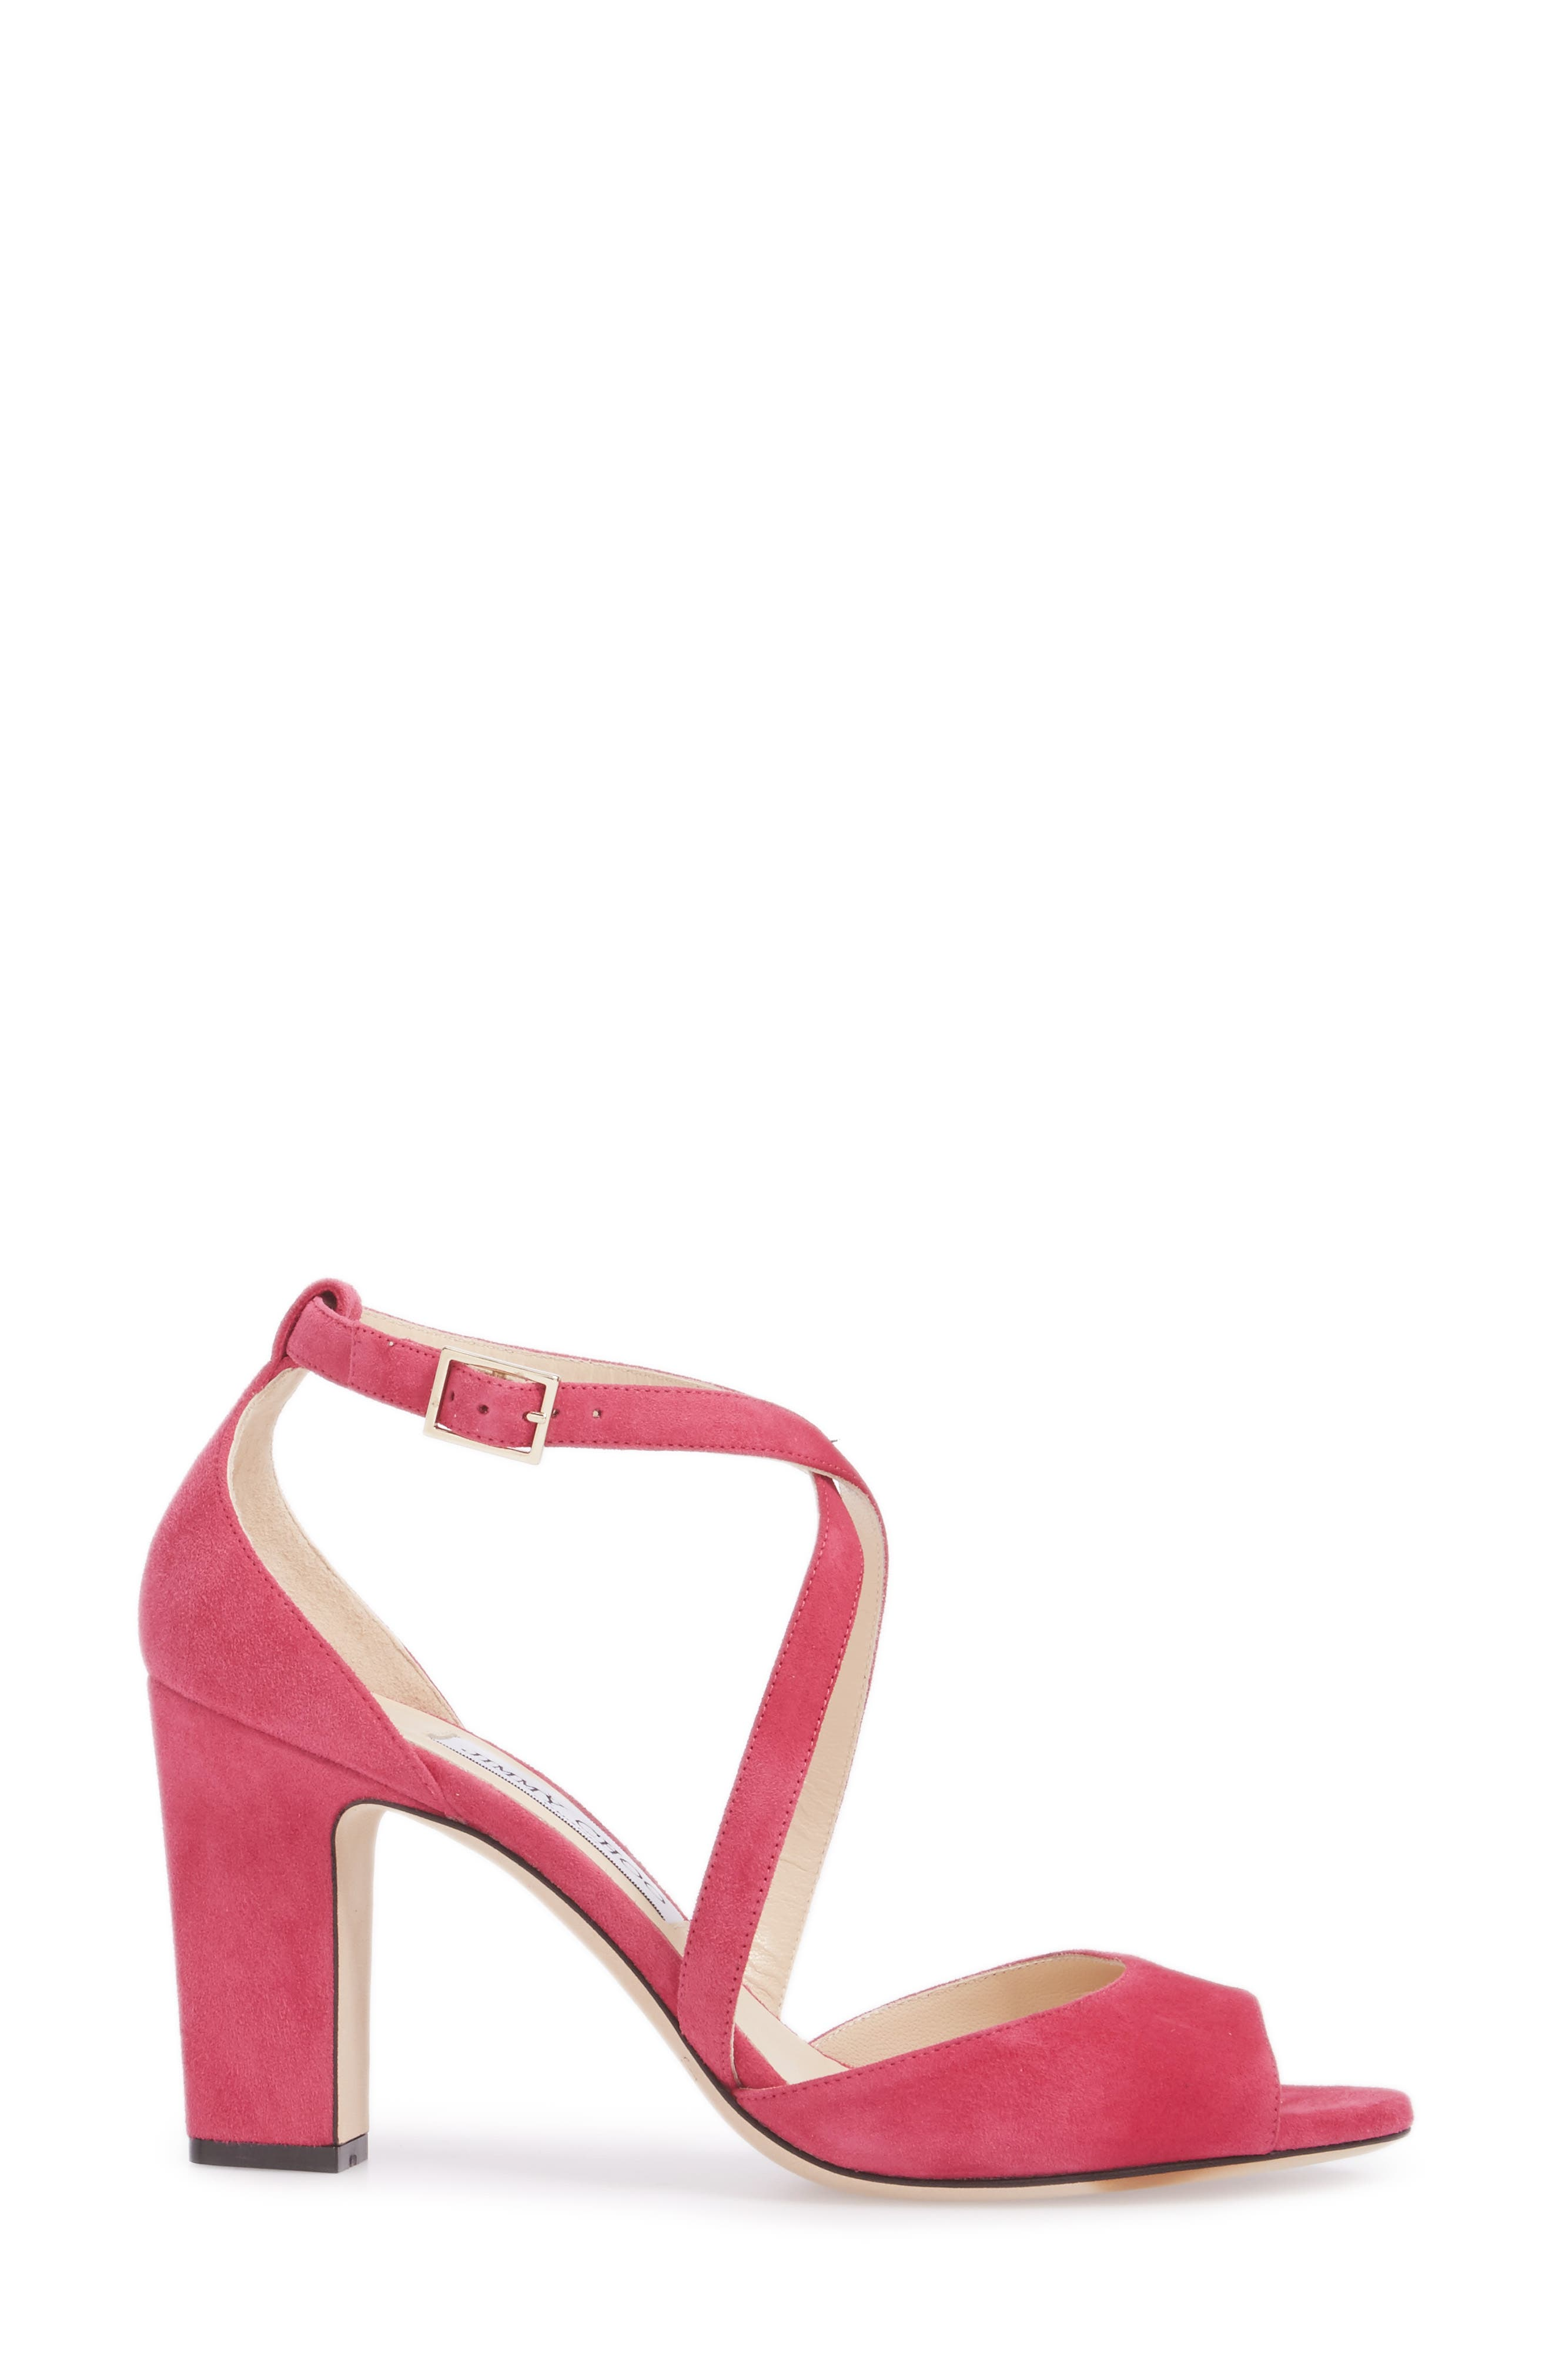 Alternate Image 3  - Jimmy Choo Carrie Sandal (Women)